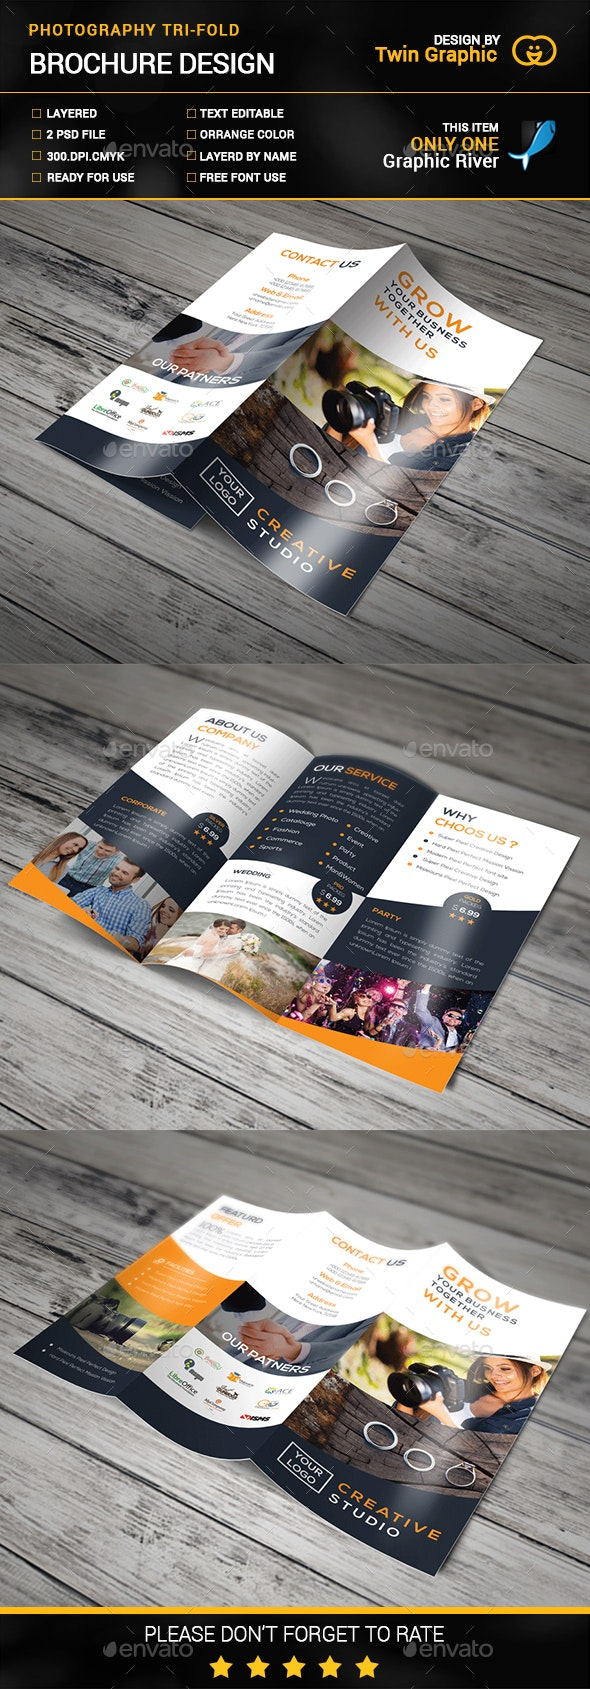 Photography Tri-Fold Brochure - Brochures Print Templates